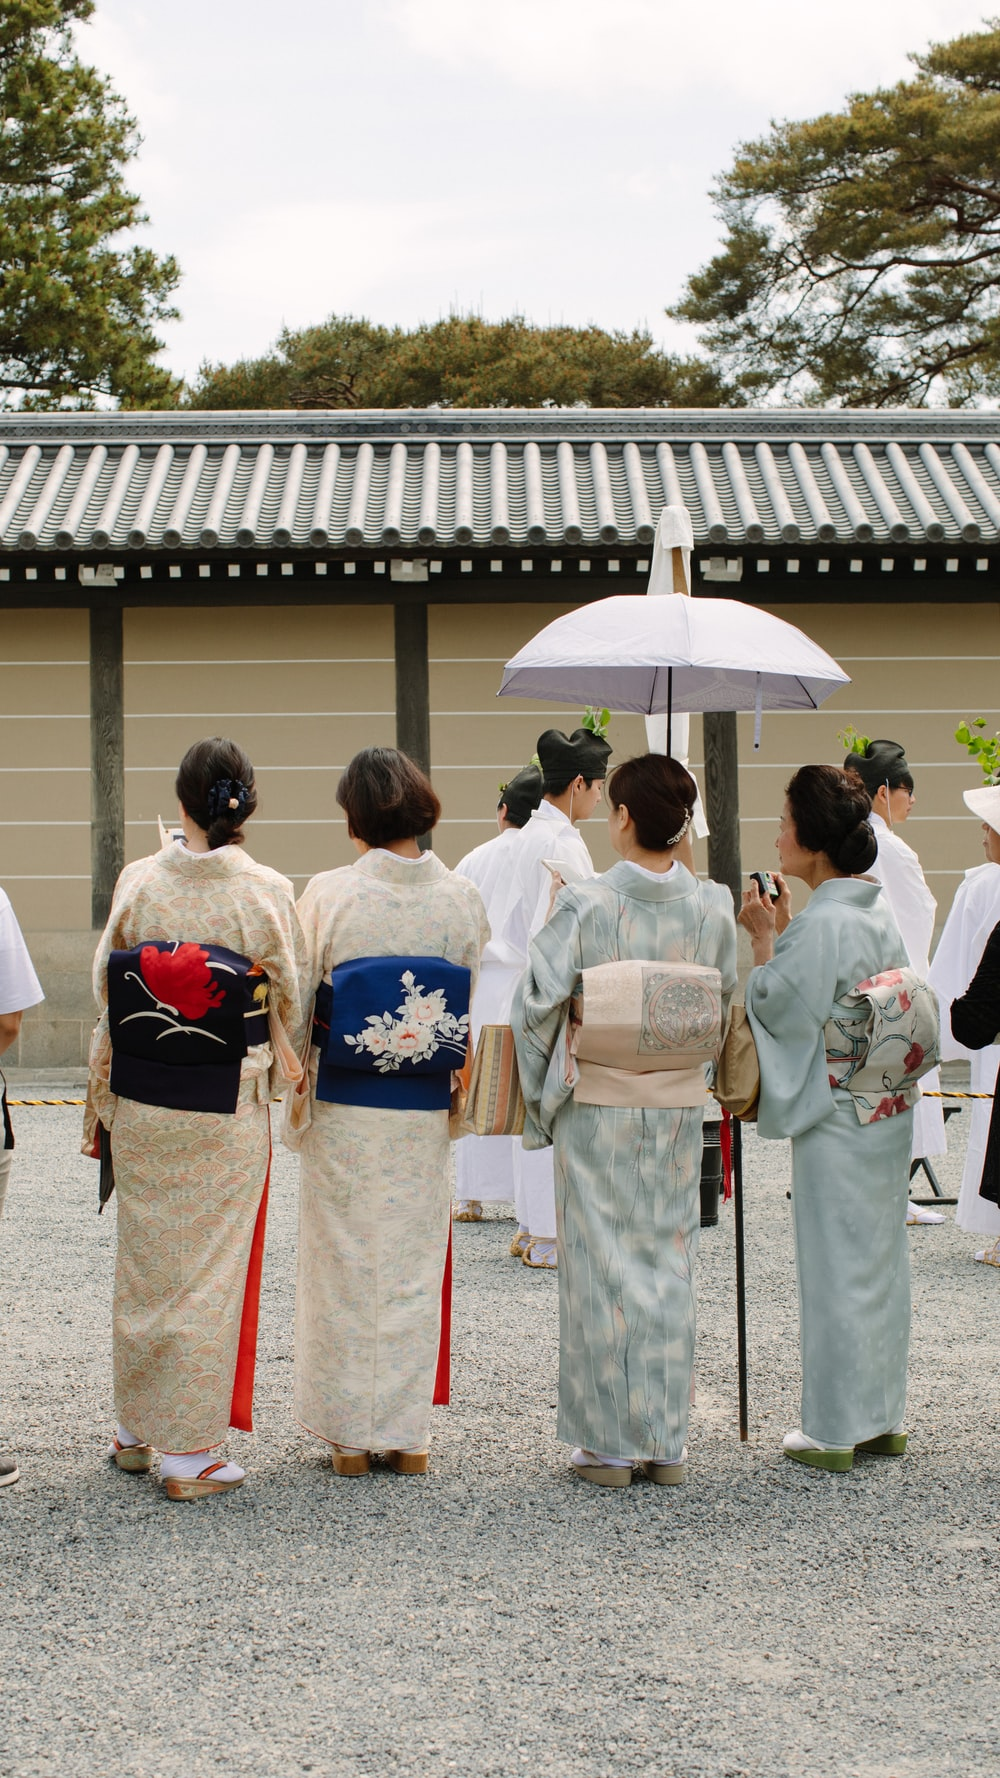 group of people wearing white and yellow floral kimono standing on gray concrete floor during daytime